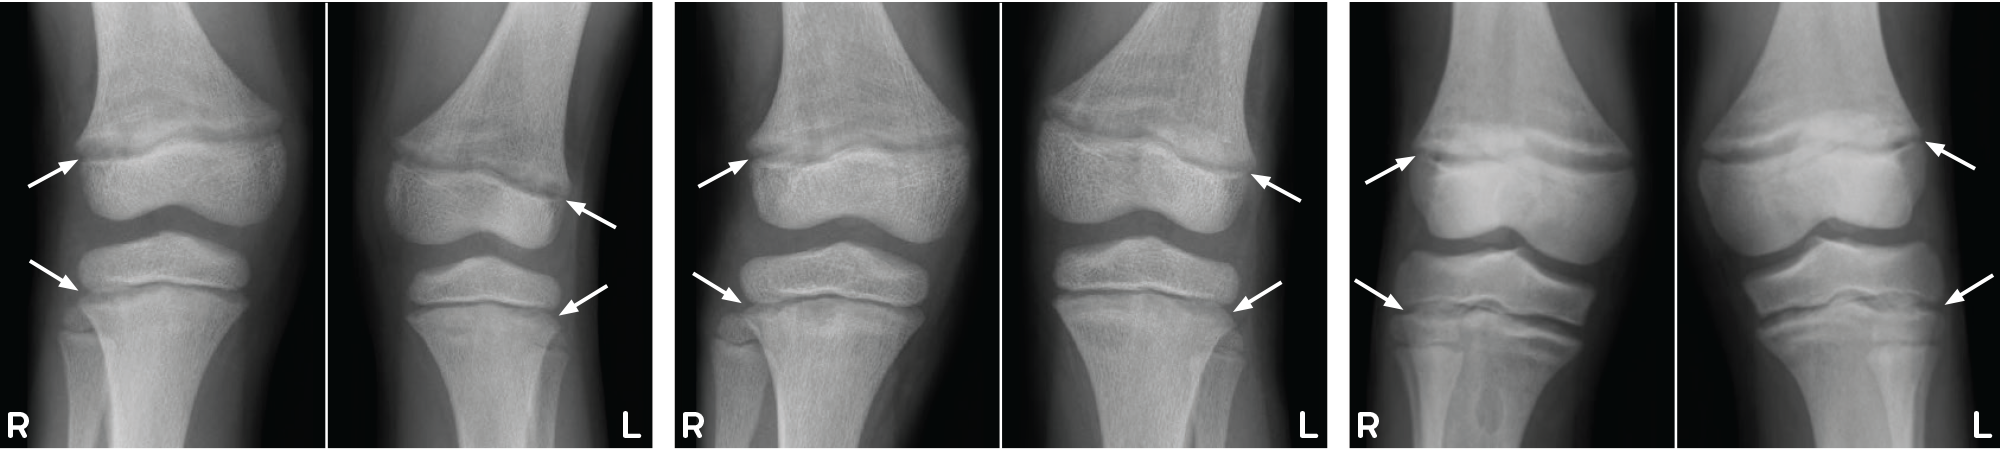 Example radiographs of knees from patient on conventional therapy